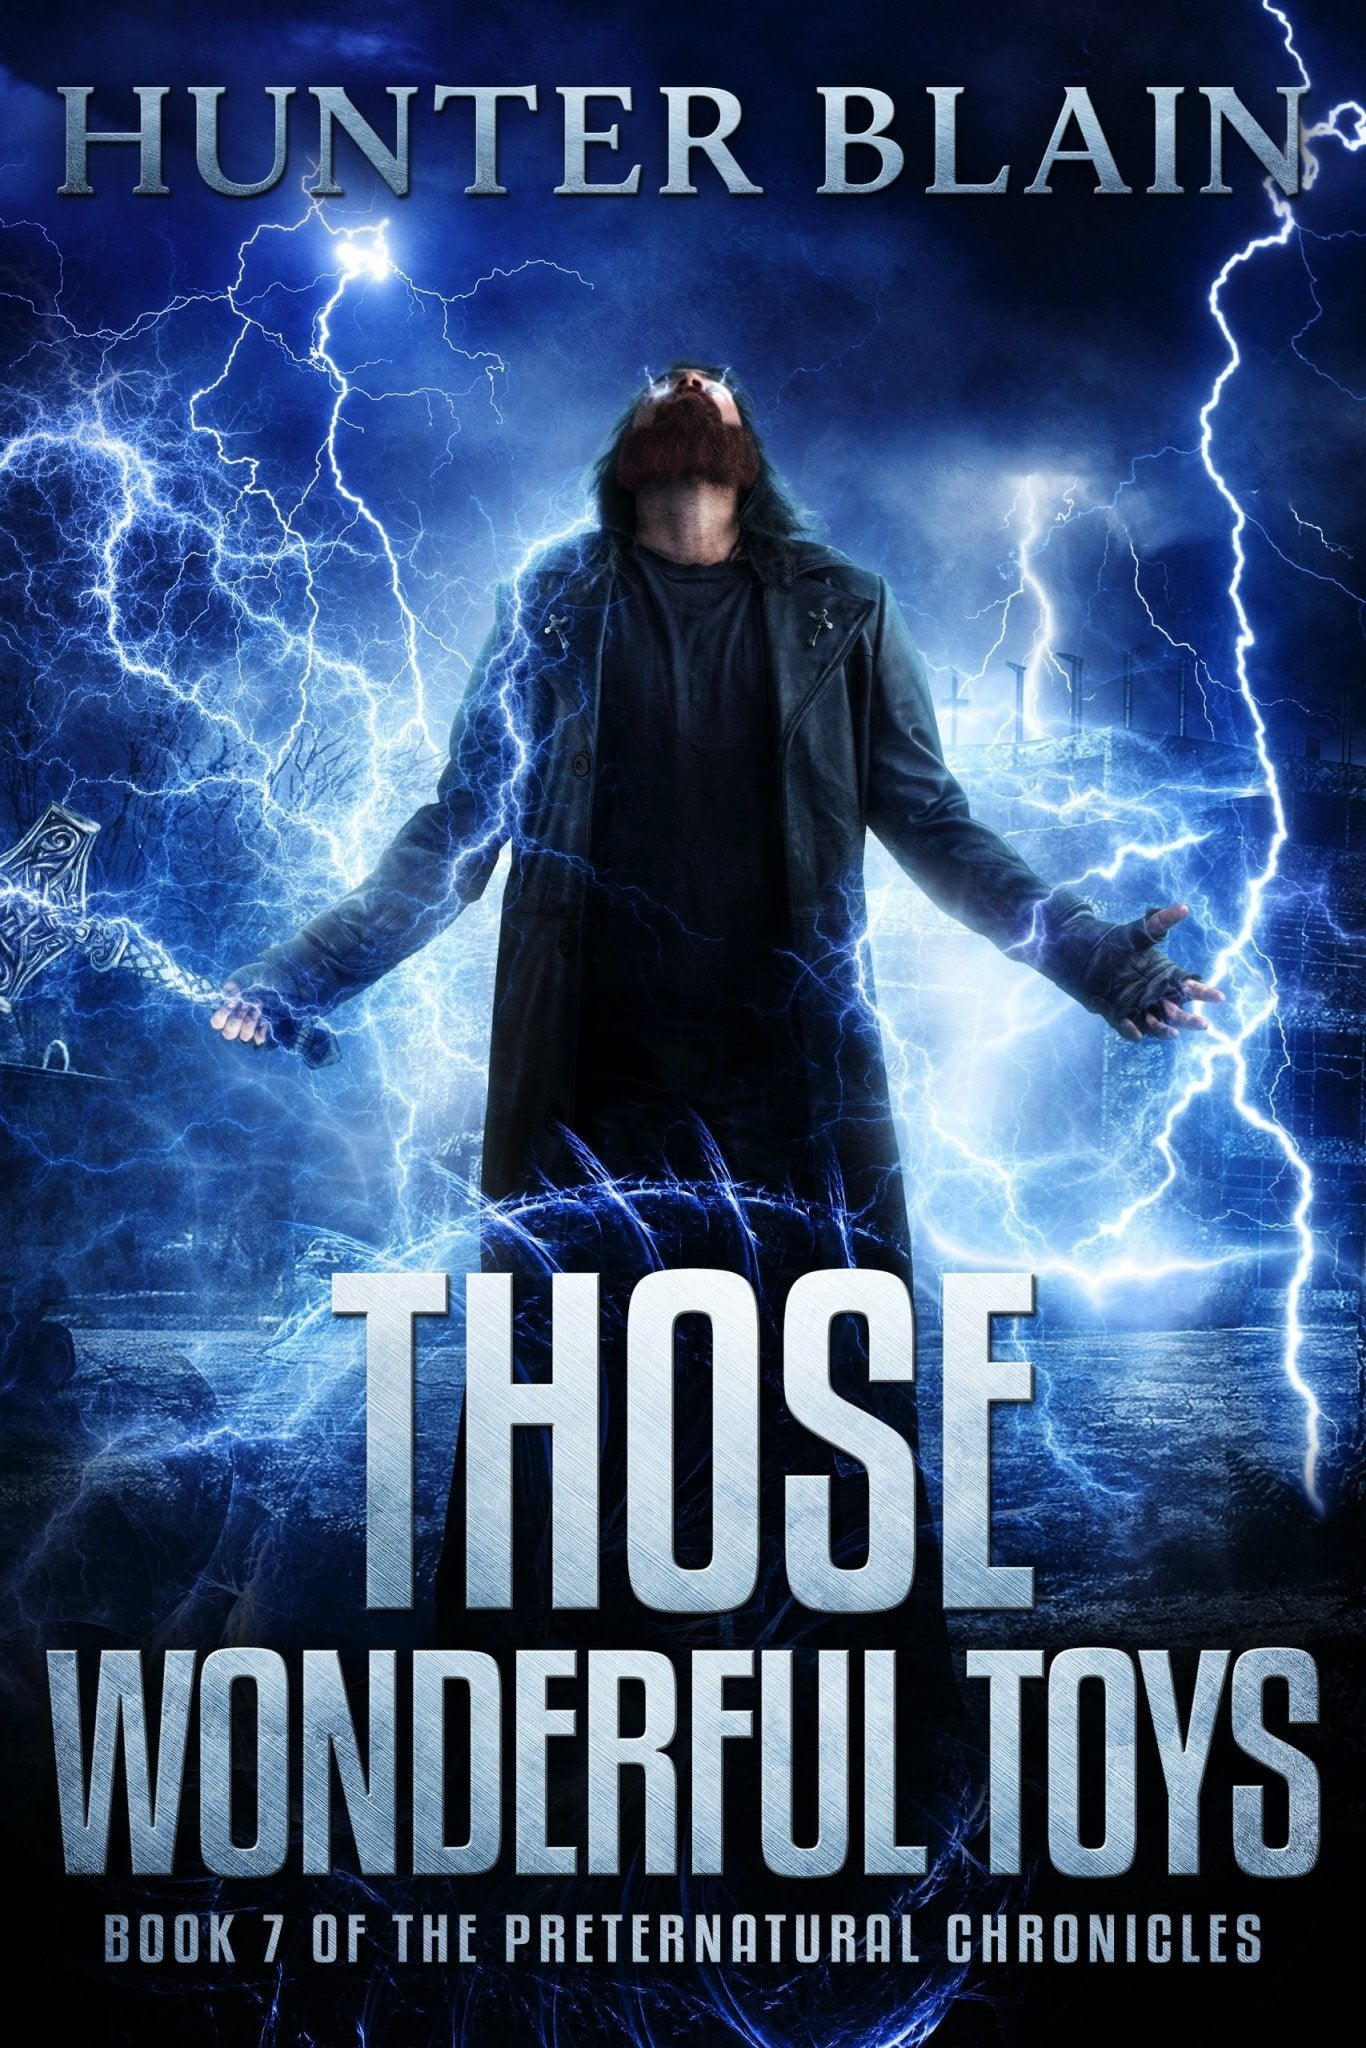 Those Wonderful Toys: Preternatural Chronicles Book 7 - Argento Bookstore